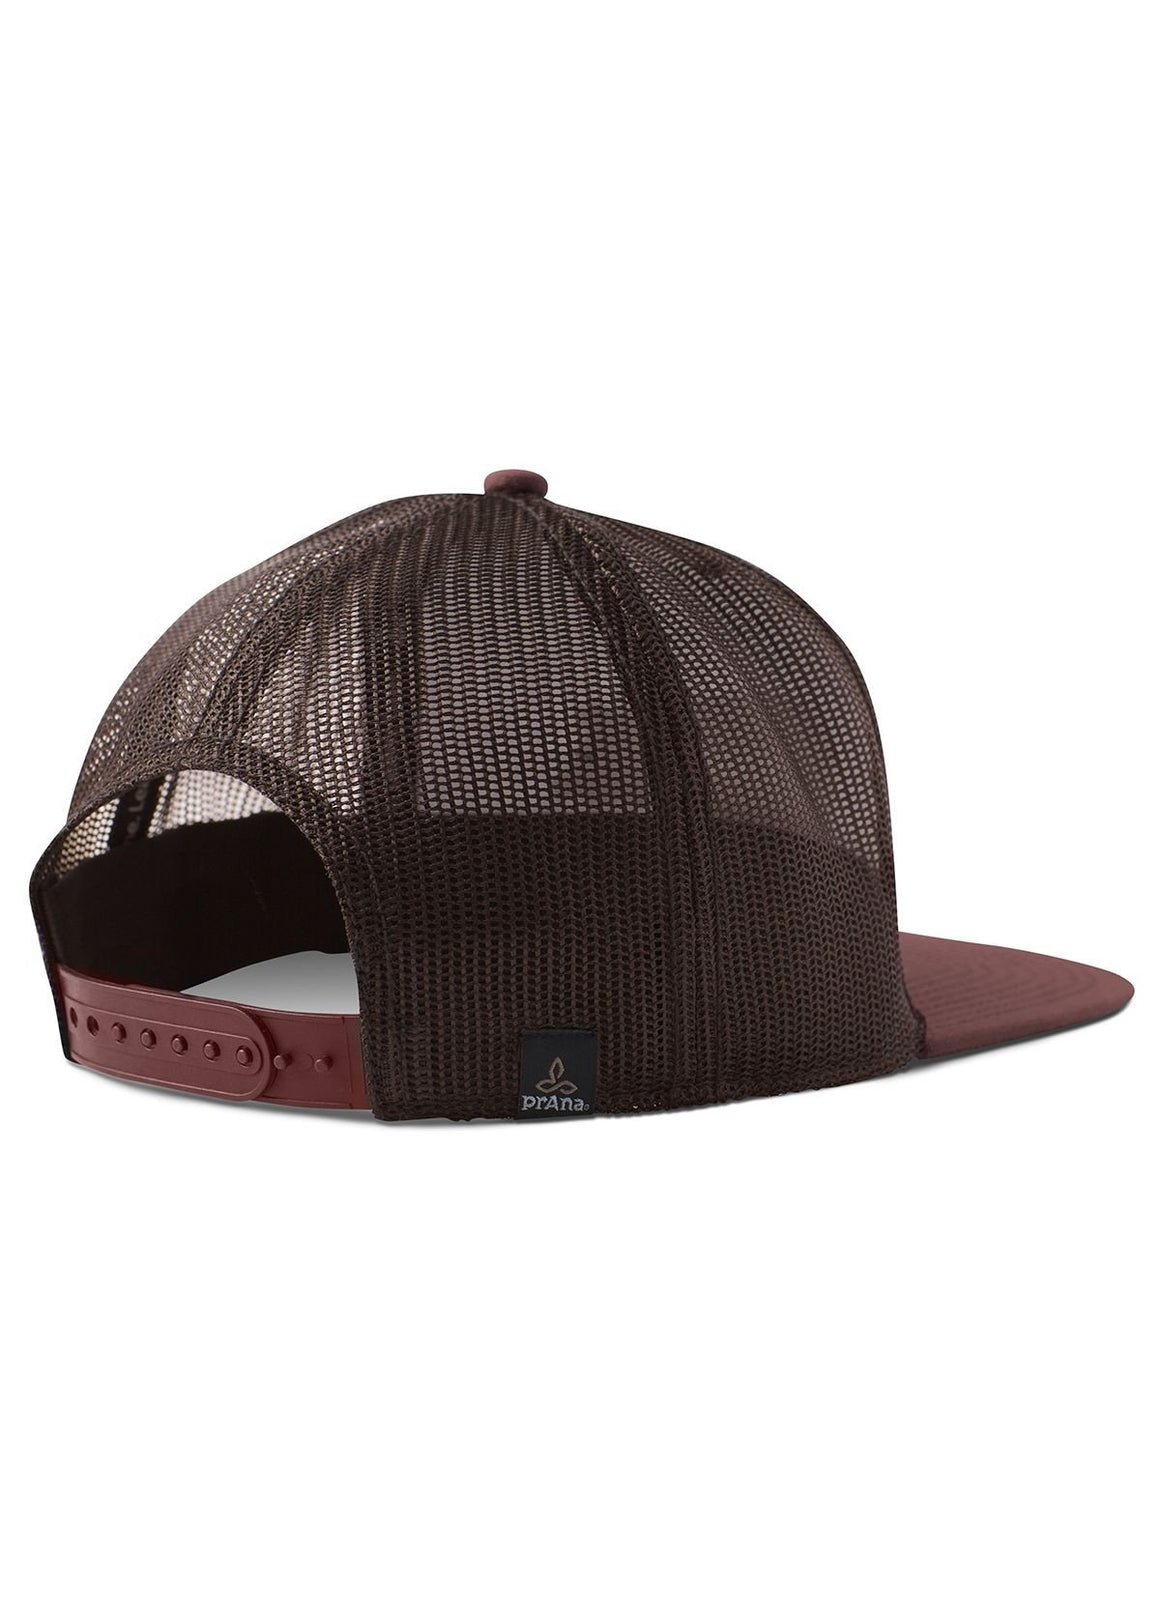 Prana Journeyman Trucker